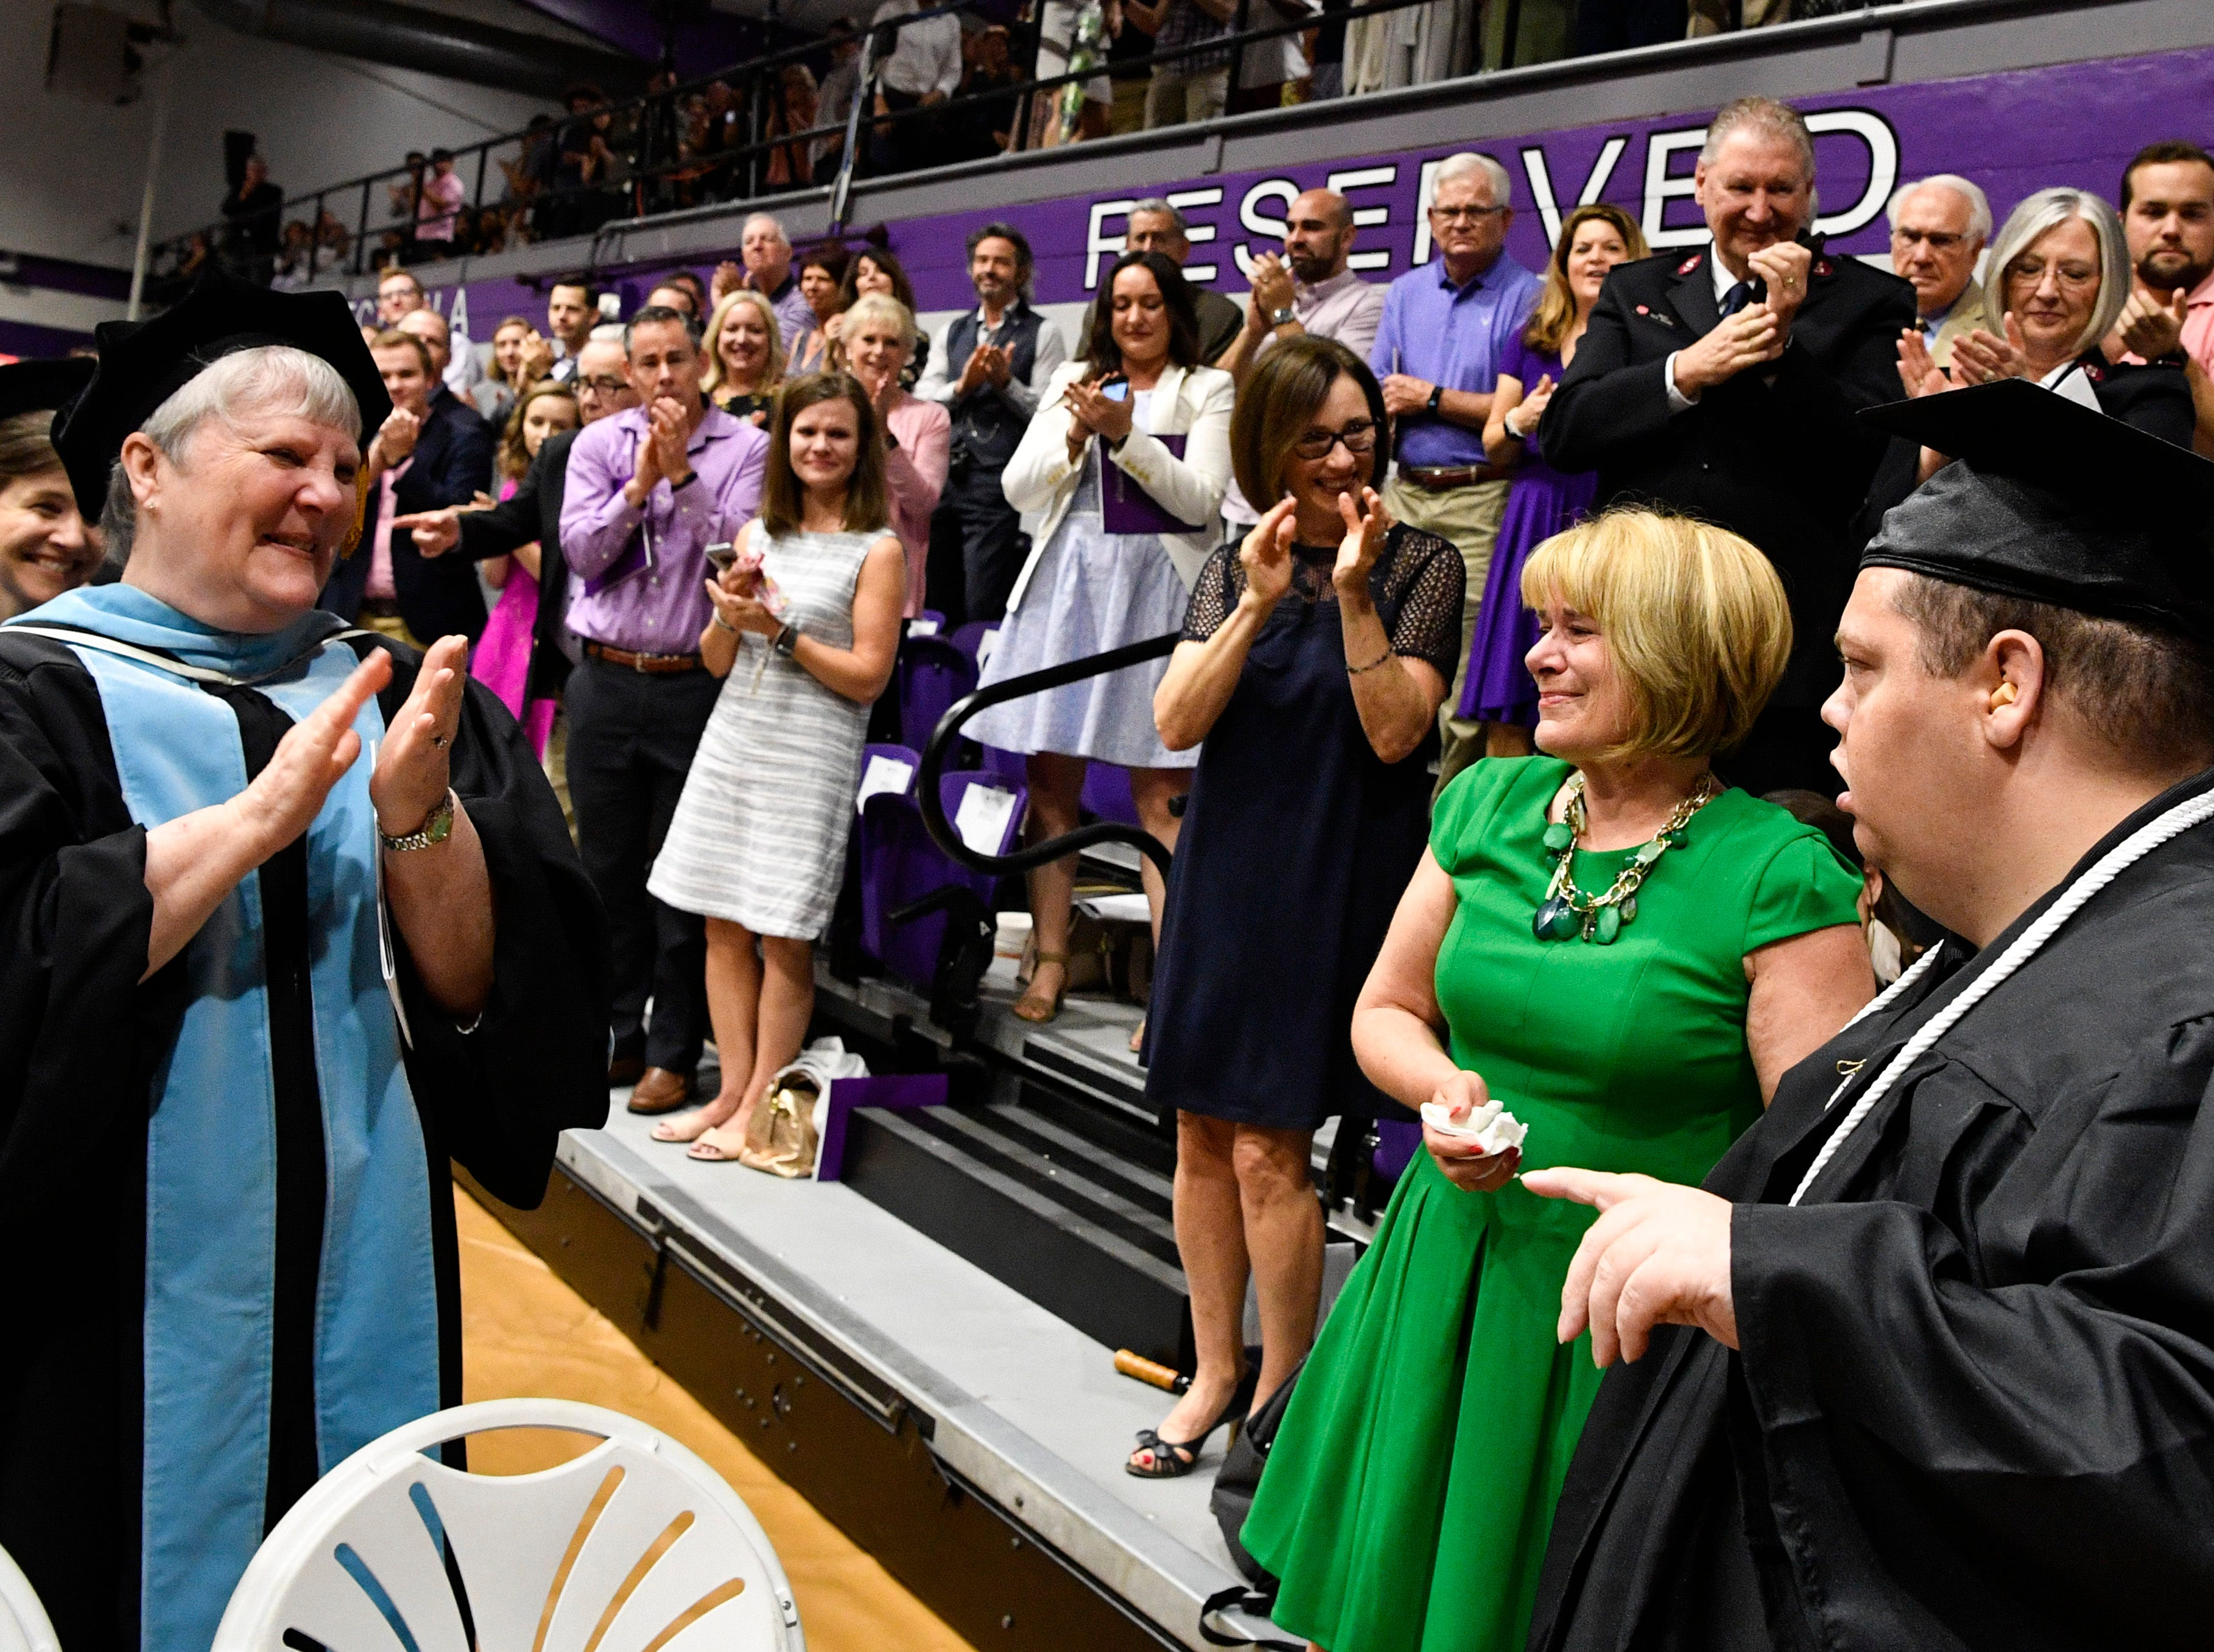 Standing with his mother Jane, Brian Schnelle receives a standing ovation from the crowd as he graduated from Trevecca on Saturday after 12 years as a student. He is on the autism spectrum & has pursued his degree taking about 6 credits a semester Saturday, May 4, 2019, in Nashville, Tenn.